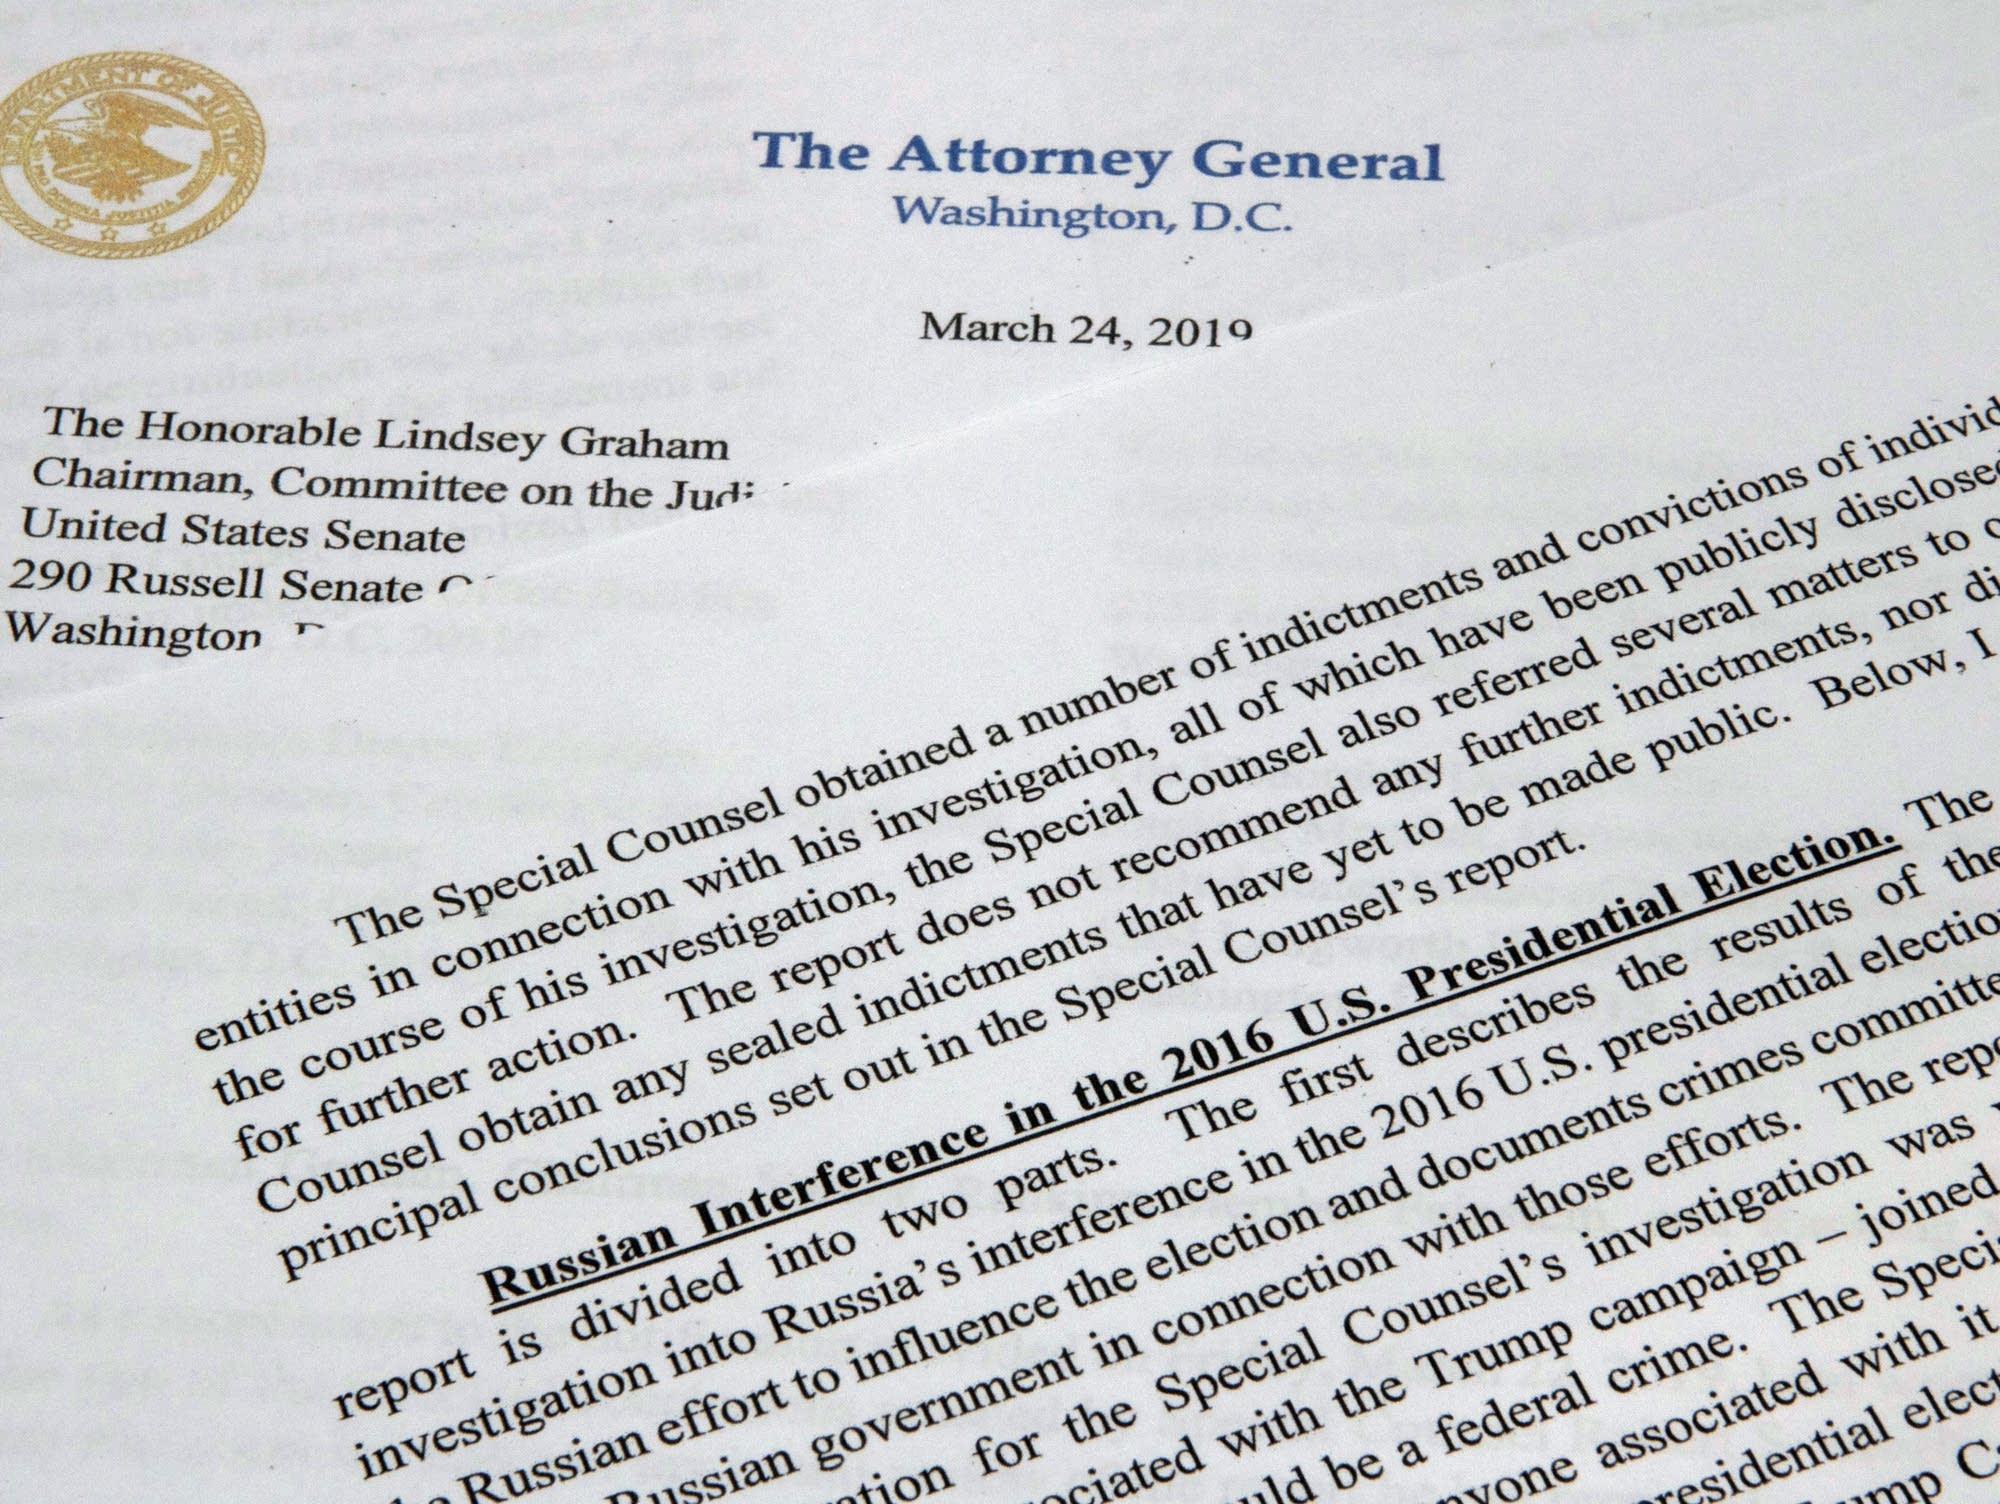 The letter from Attorney General William Barr to Congress